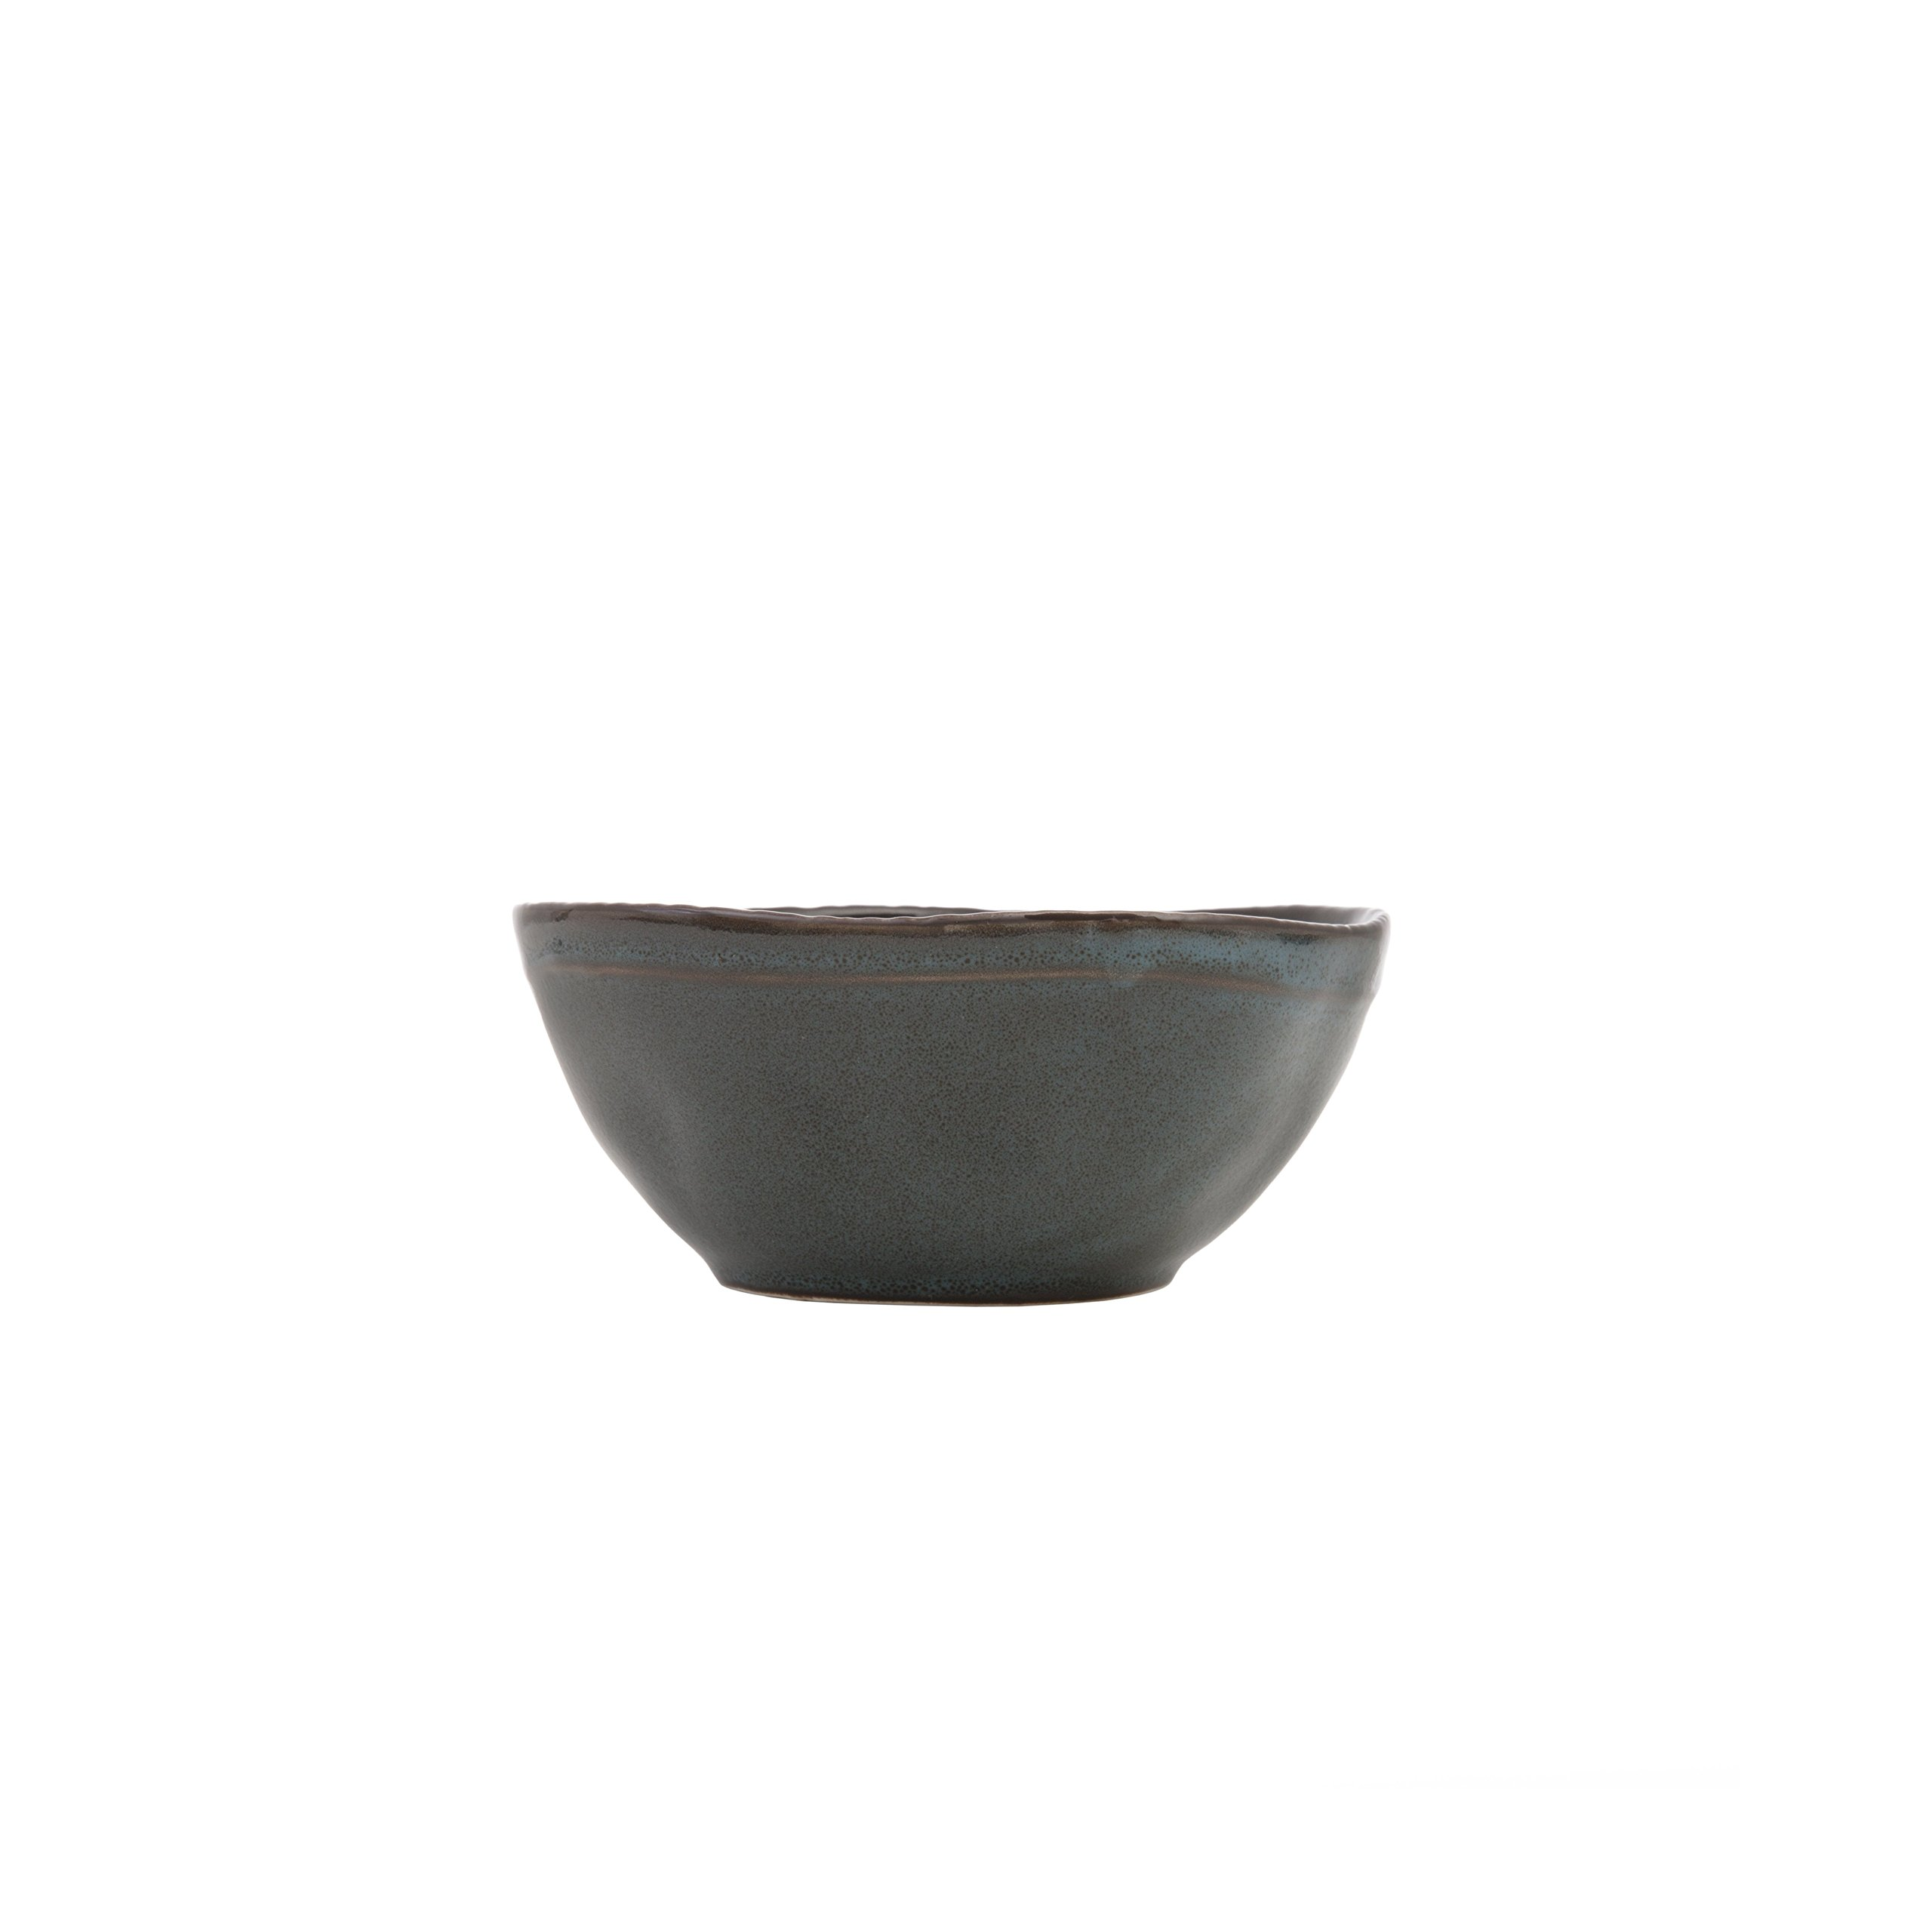 D&V 6 Piece Stōn Porcelain Dinnerware Bowl Set, 5.5'' x 2.5'', Twilight